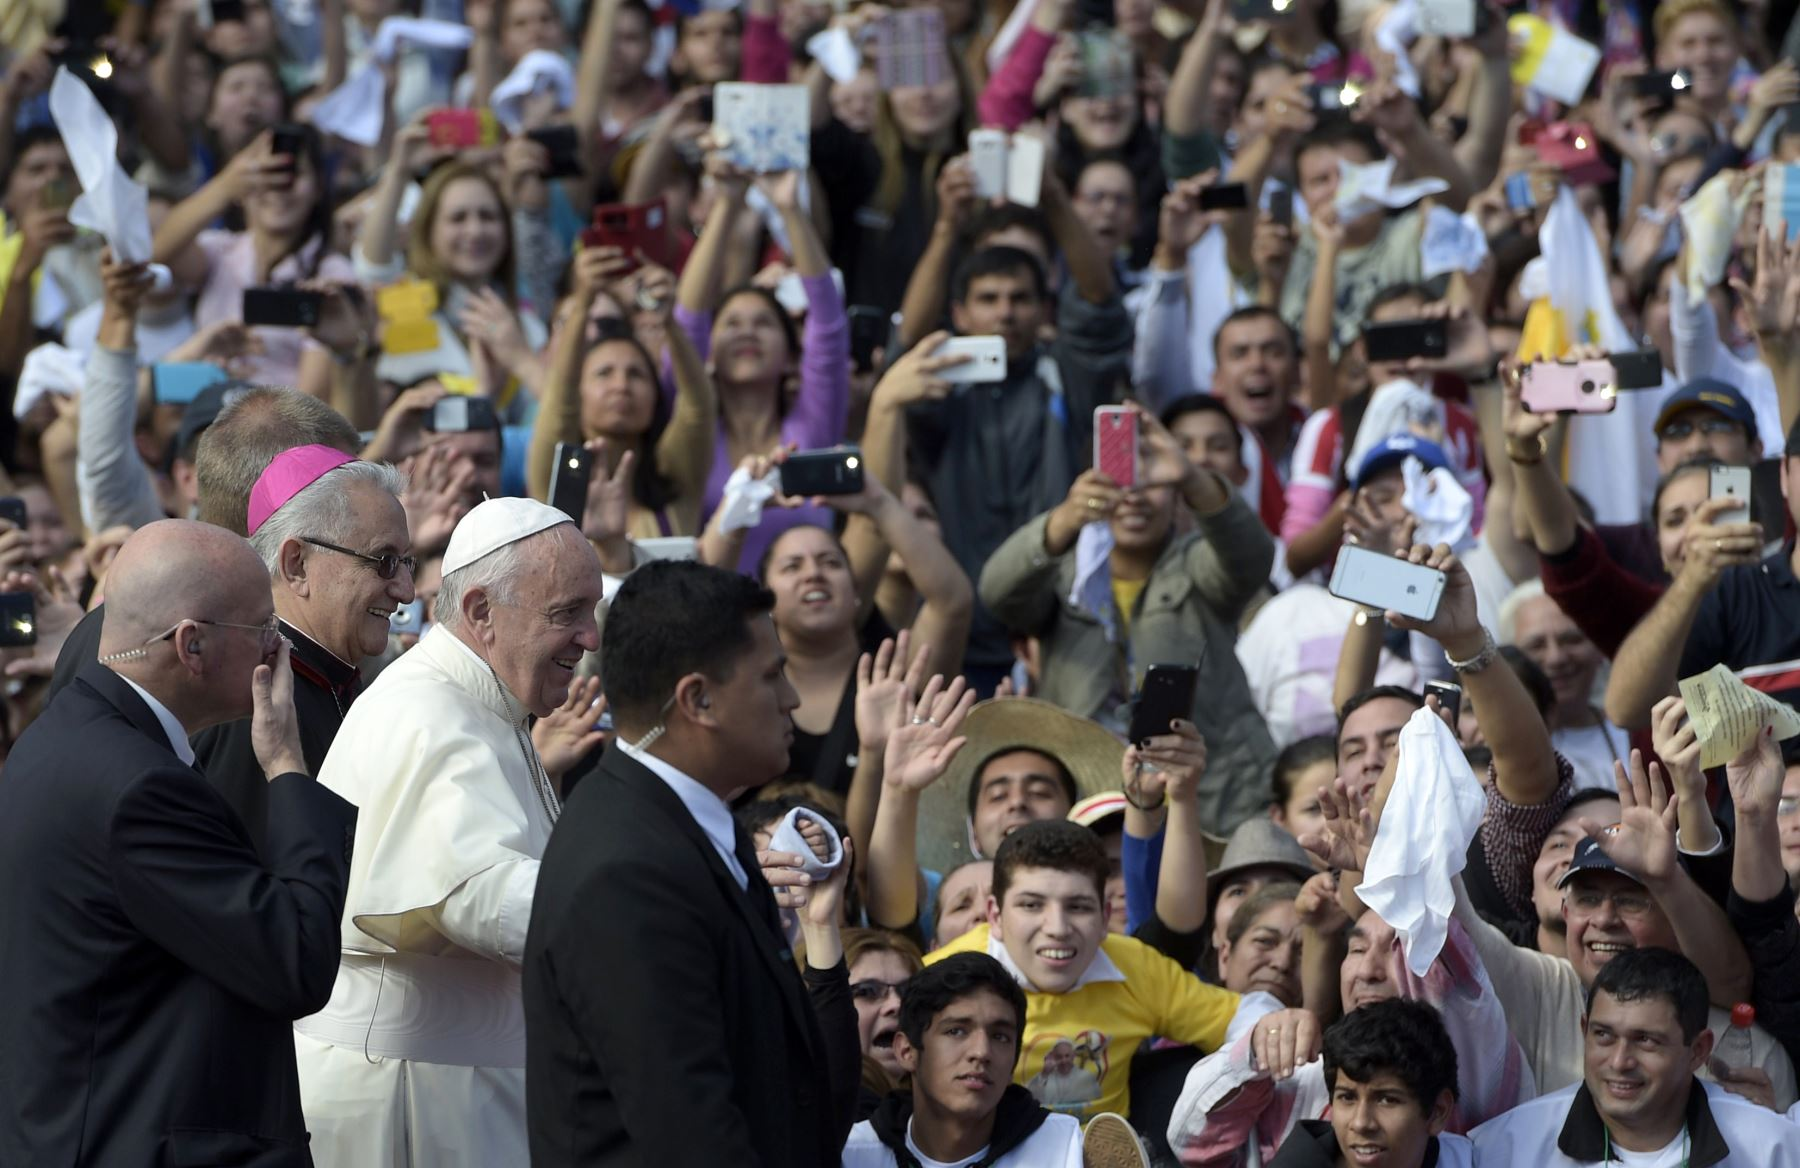 Pope Francis in South America